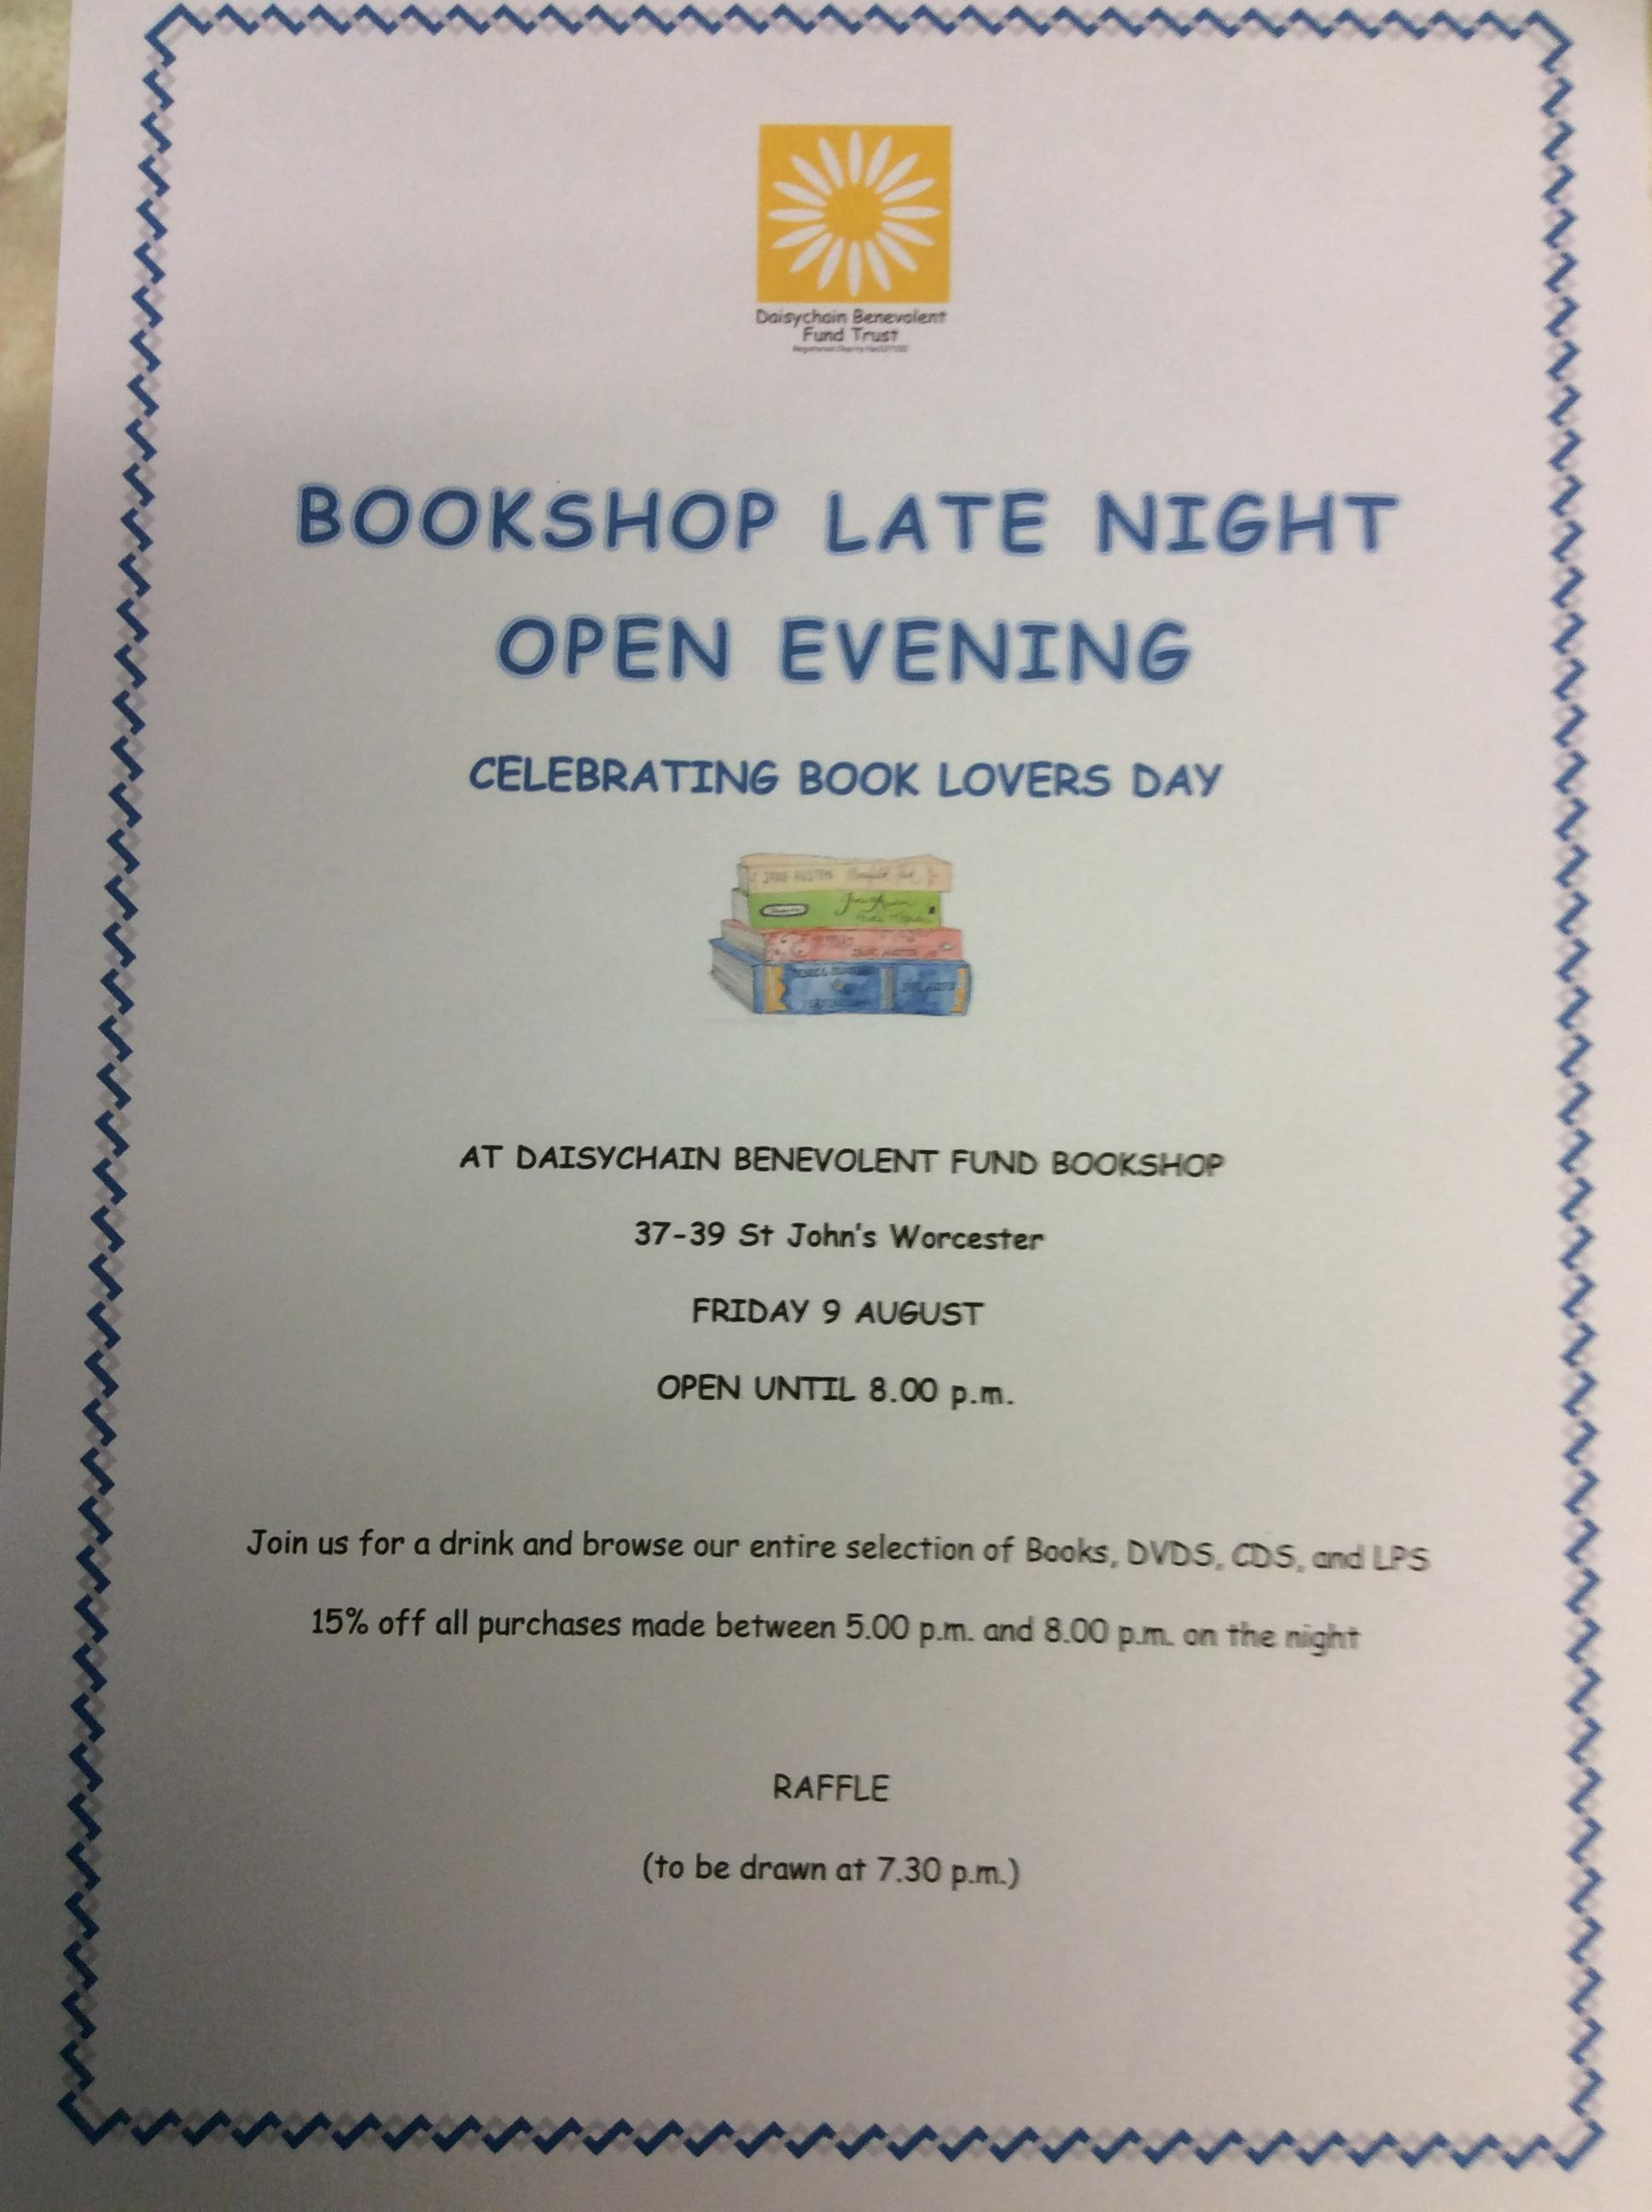 Bookshop late night opening